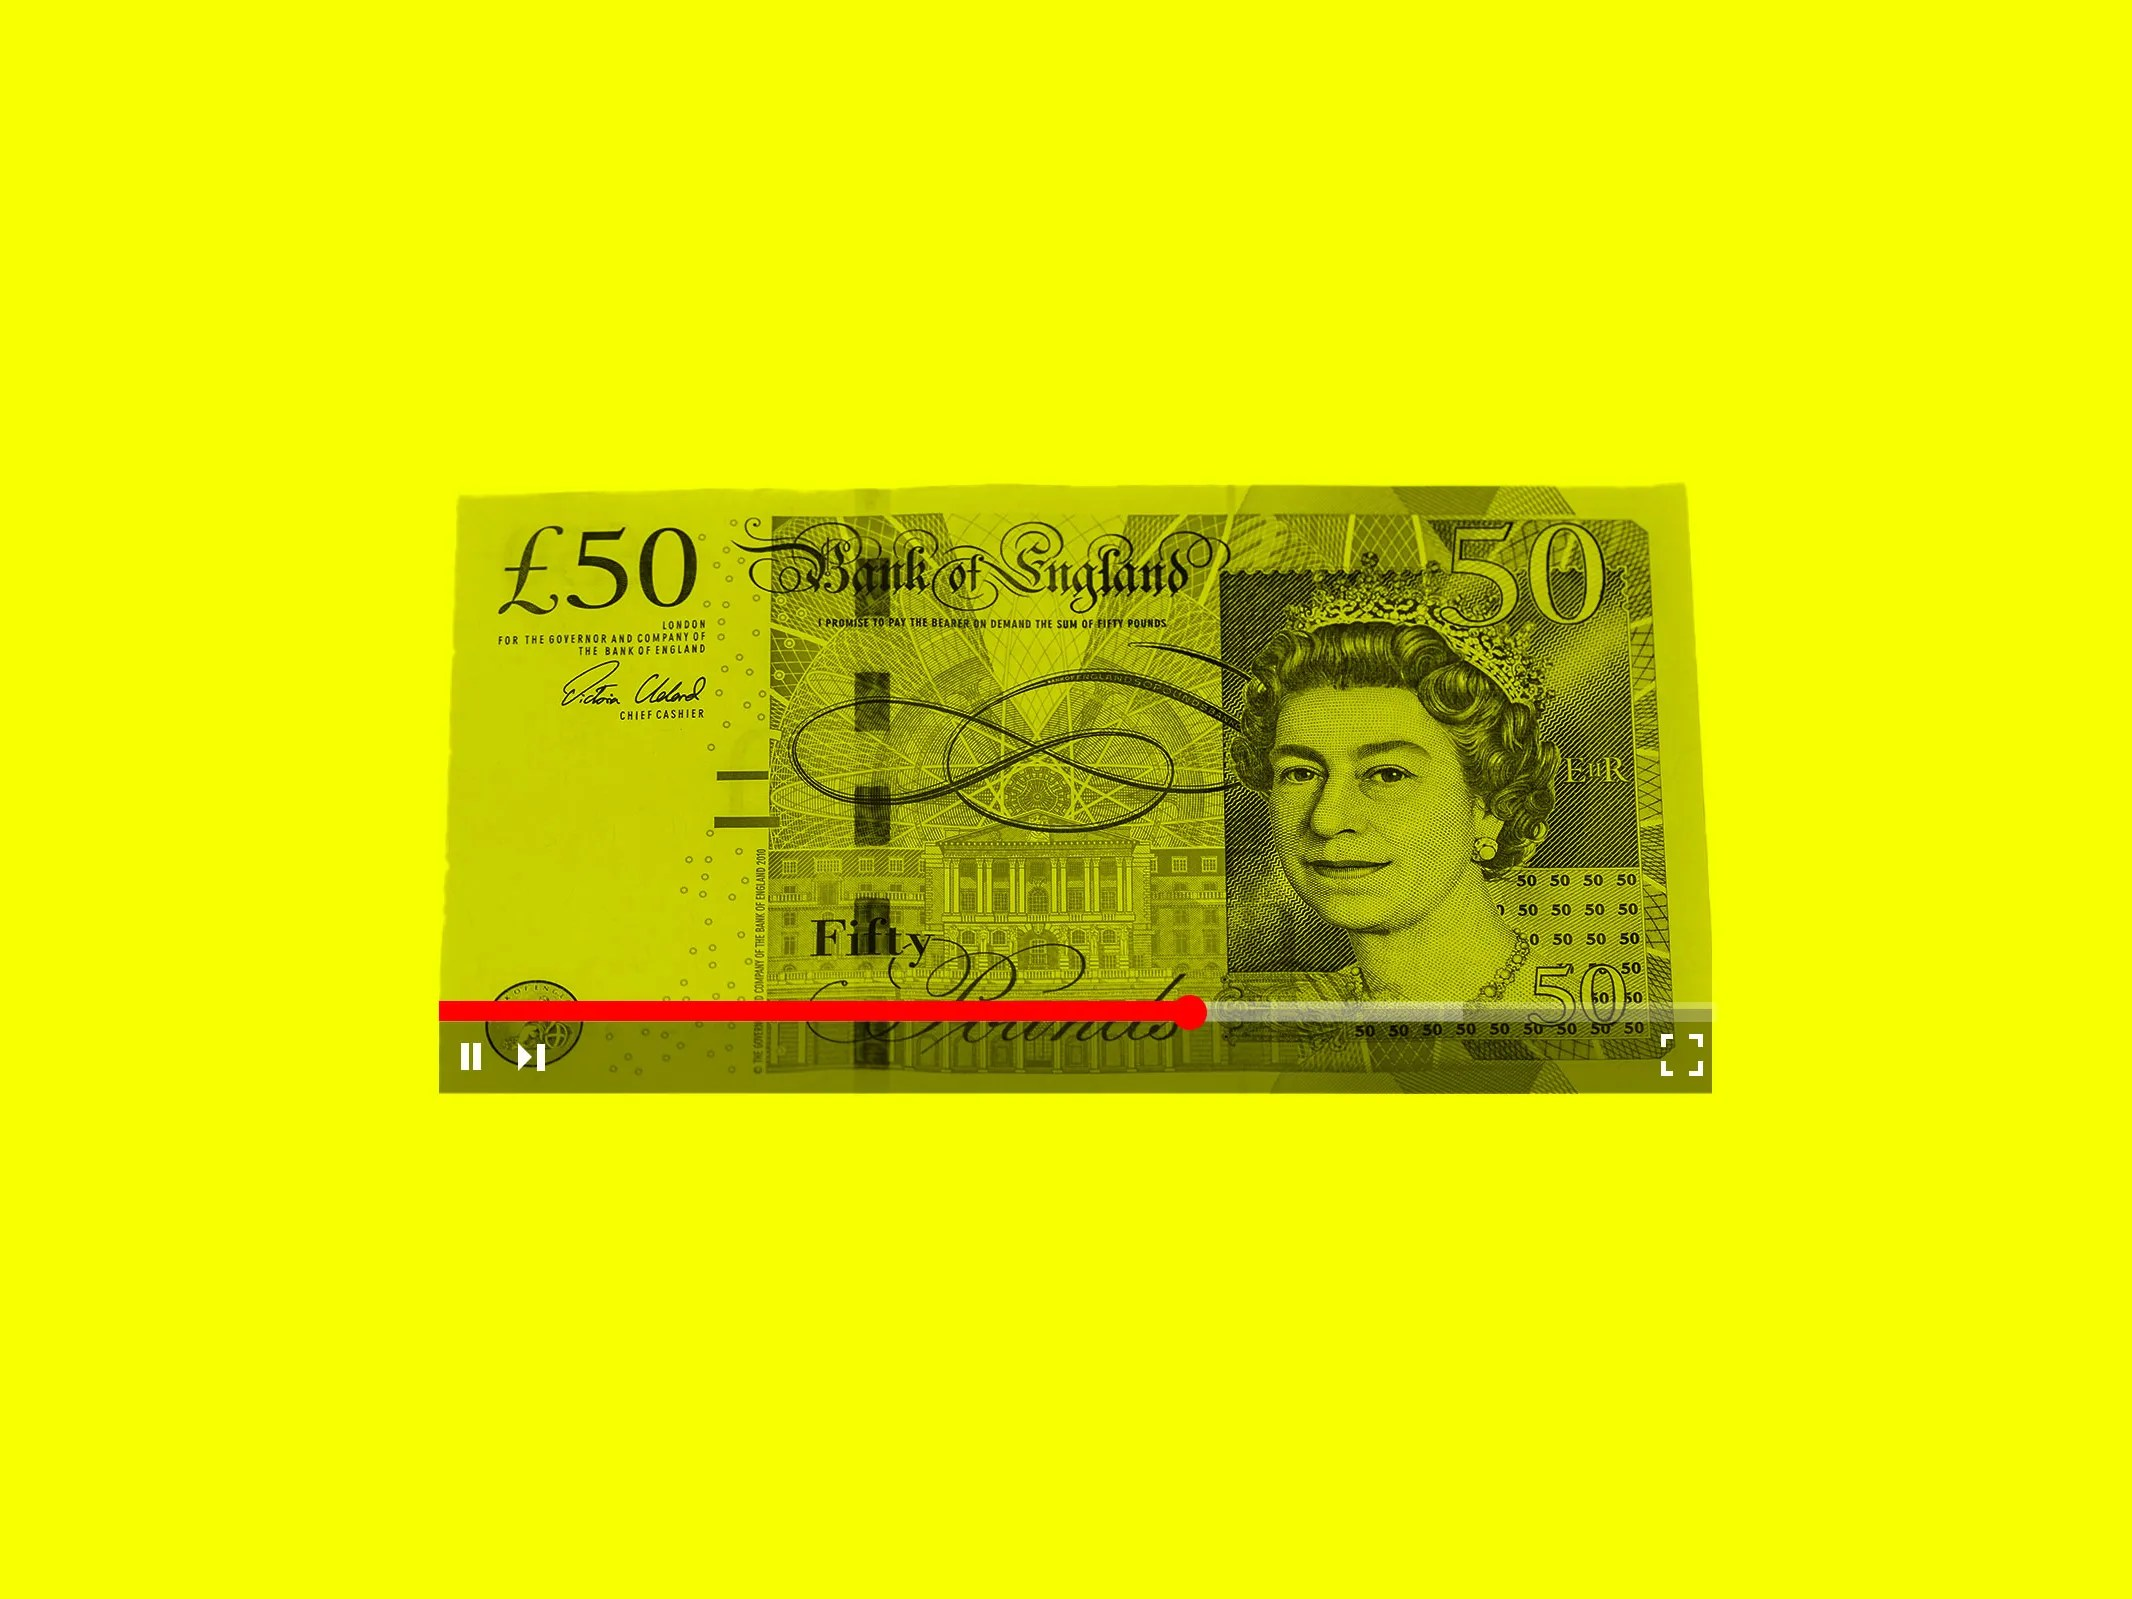 50*50 Youtubers Are Finally Showing Where Their Money Comes From | Wired Uk